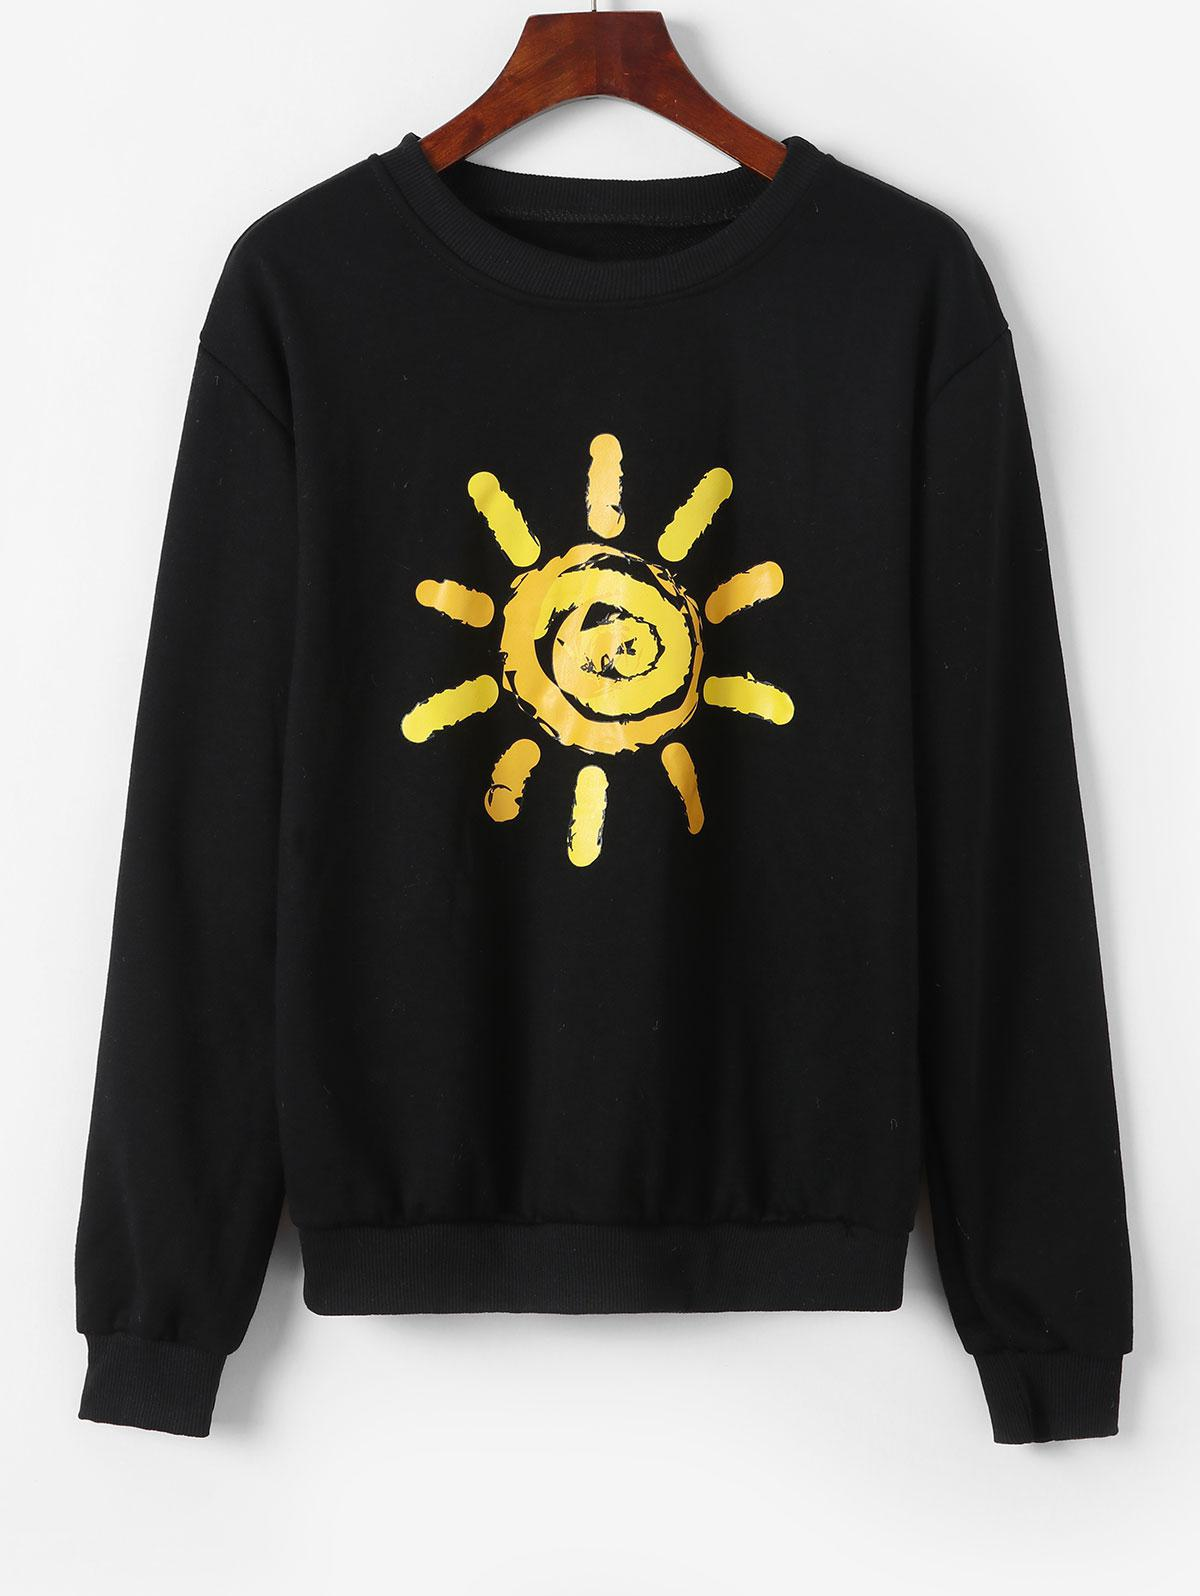 Pullover Bright Sun Graphic Sweatshirt